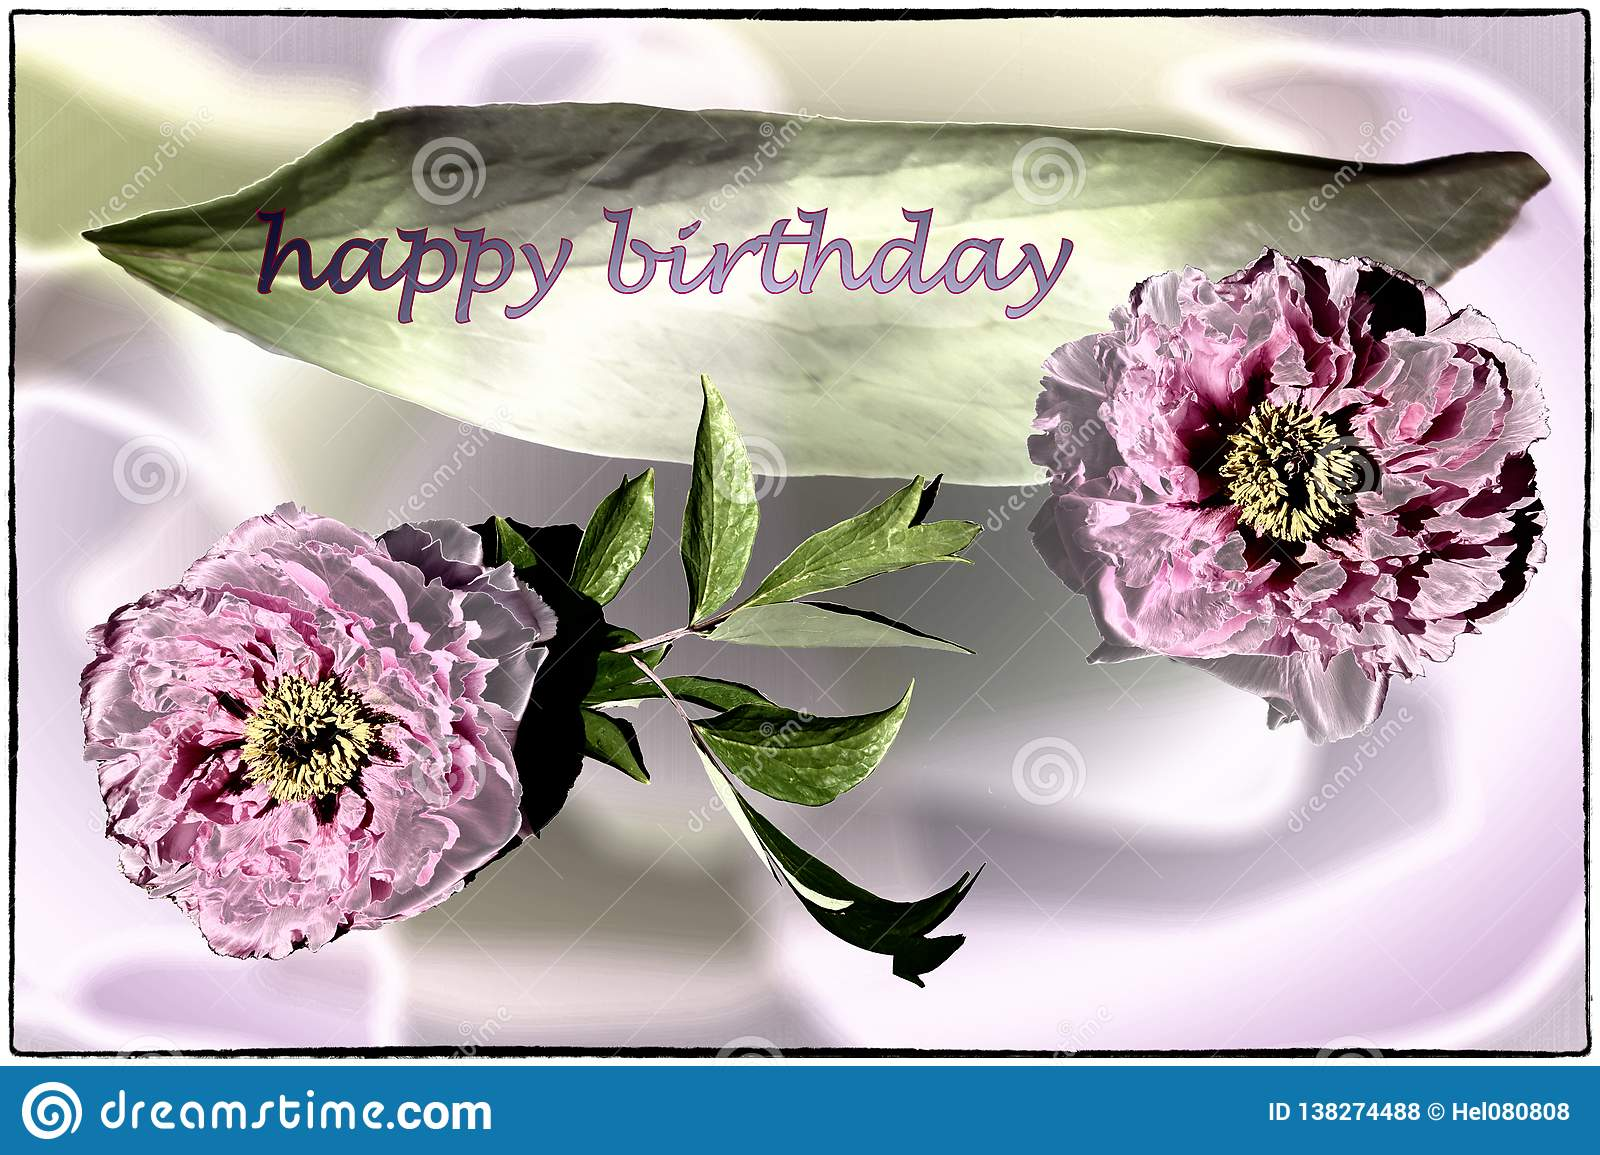 Happy Birthday card with peonies in lilac, pink and green